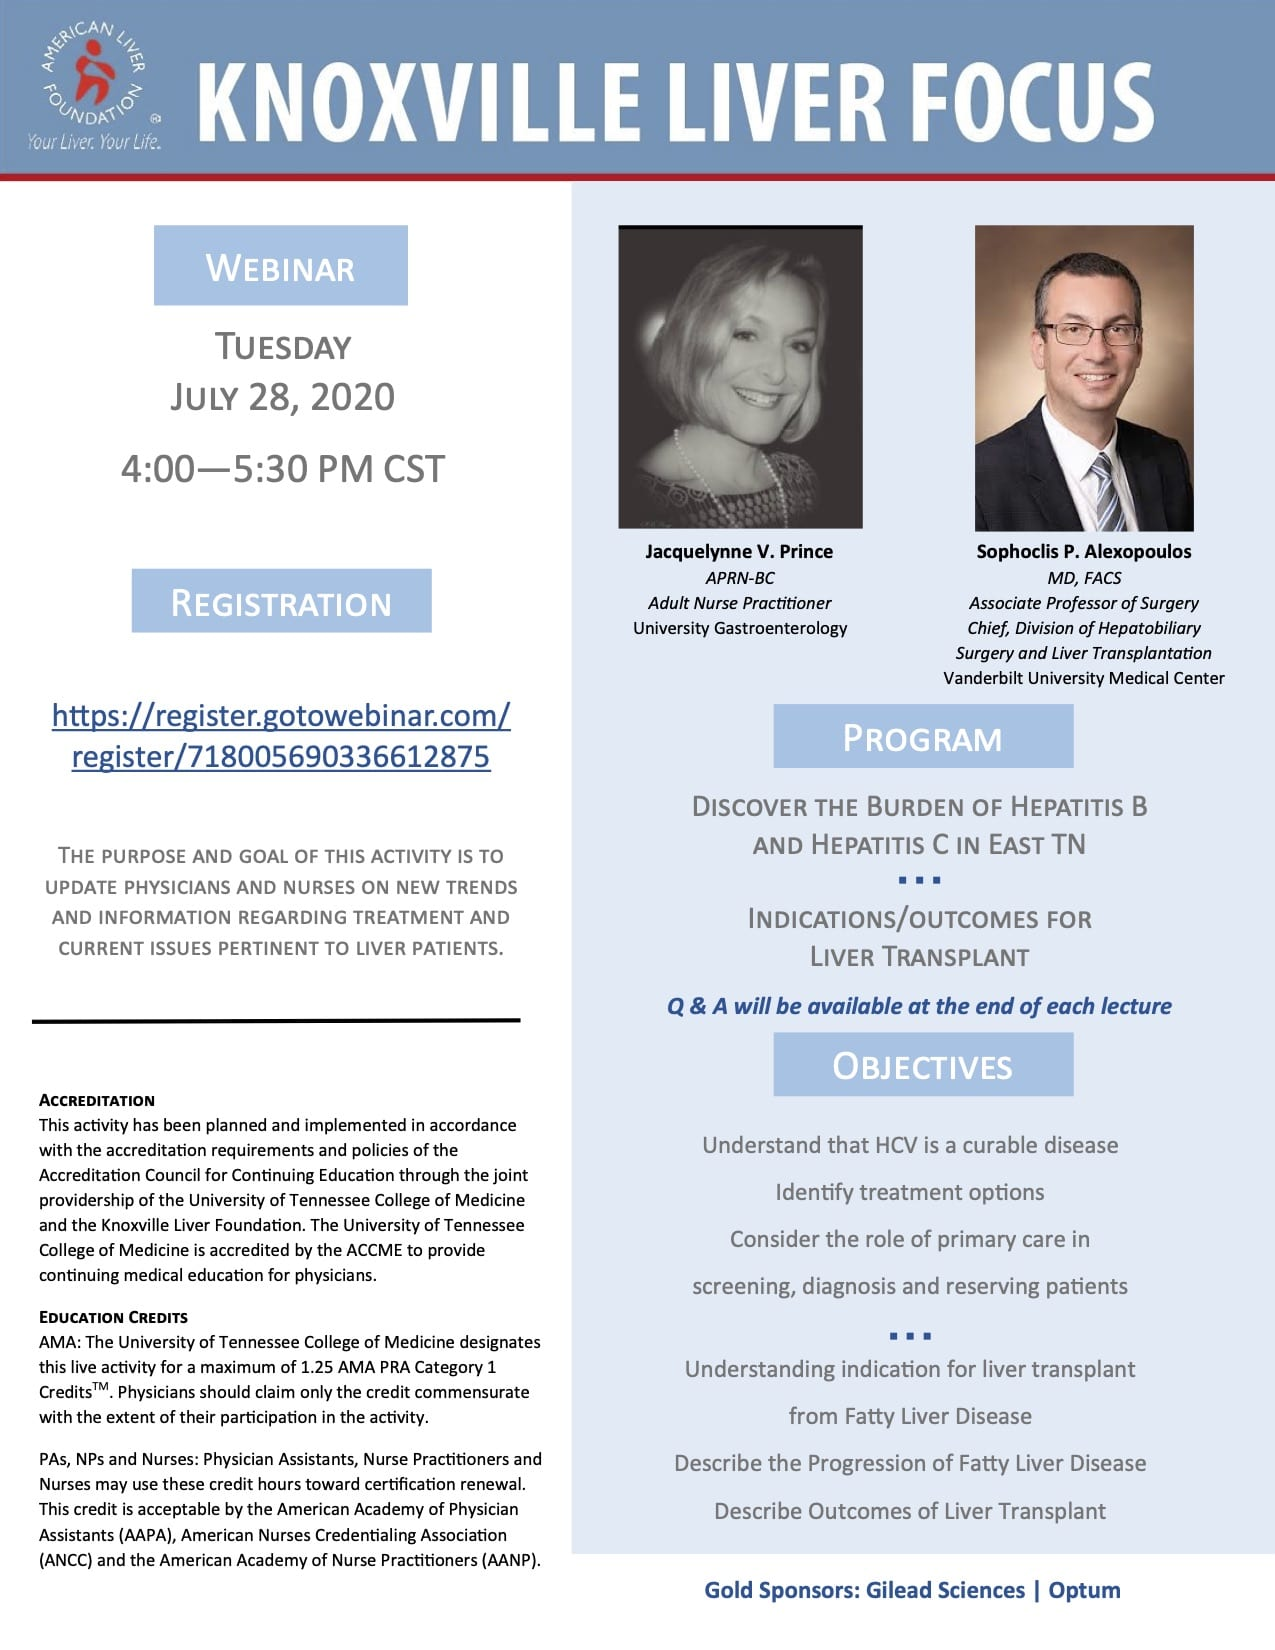 Liver Focus Webinar for Professionals July 2020